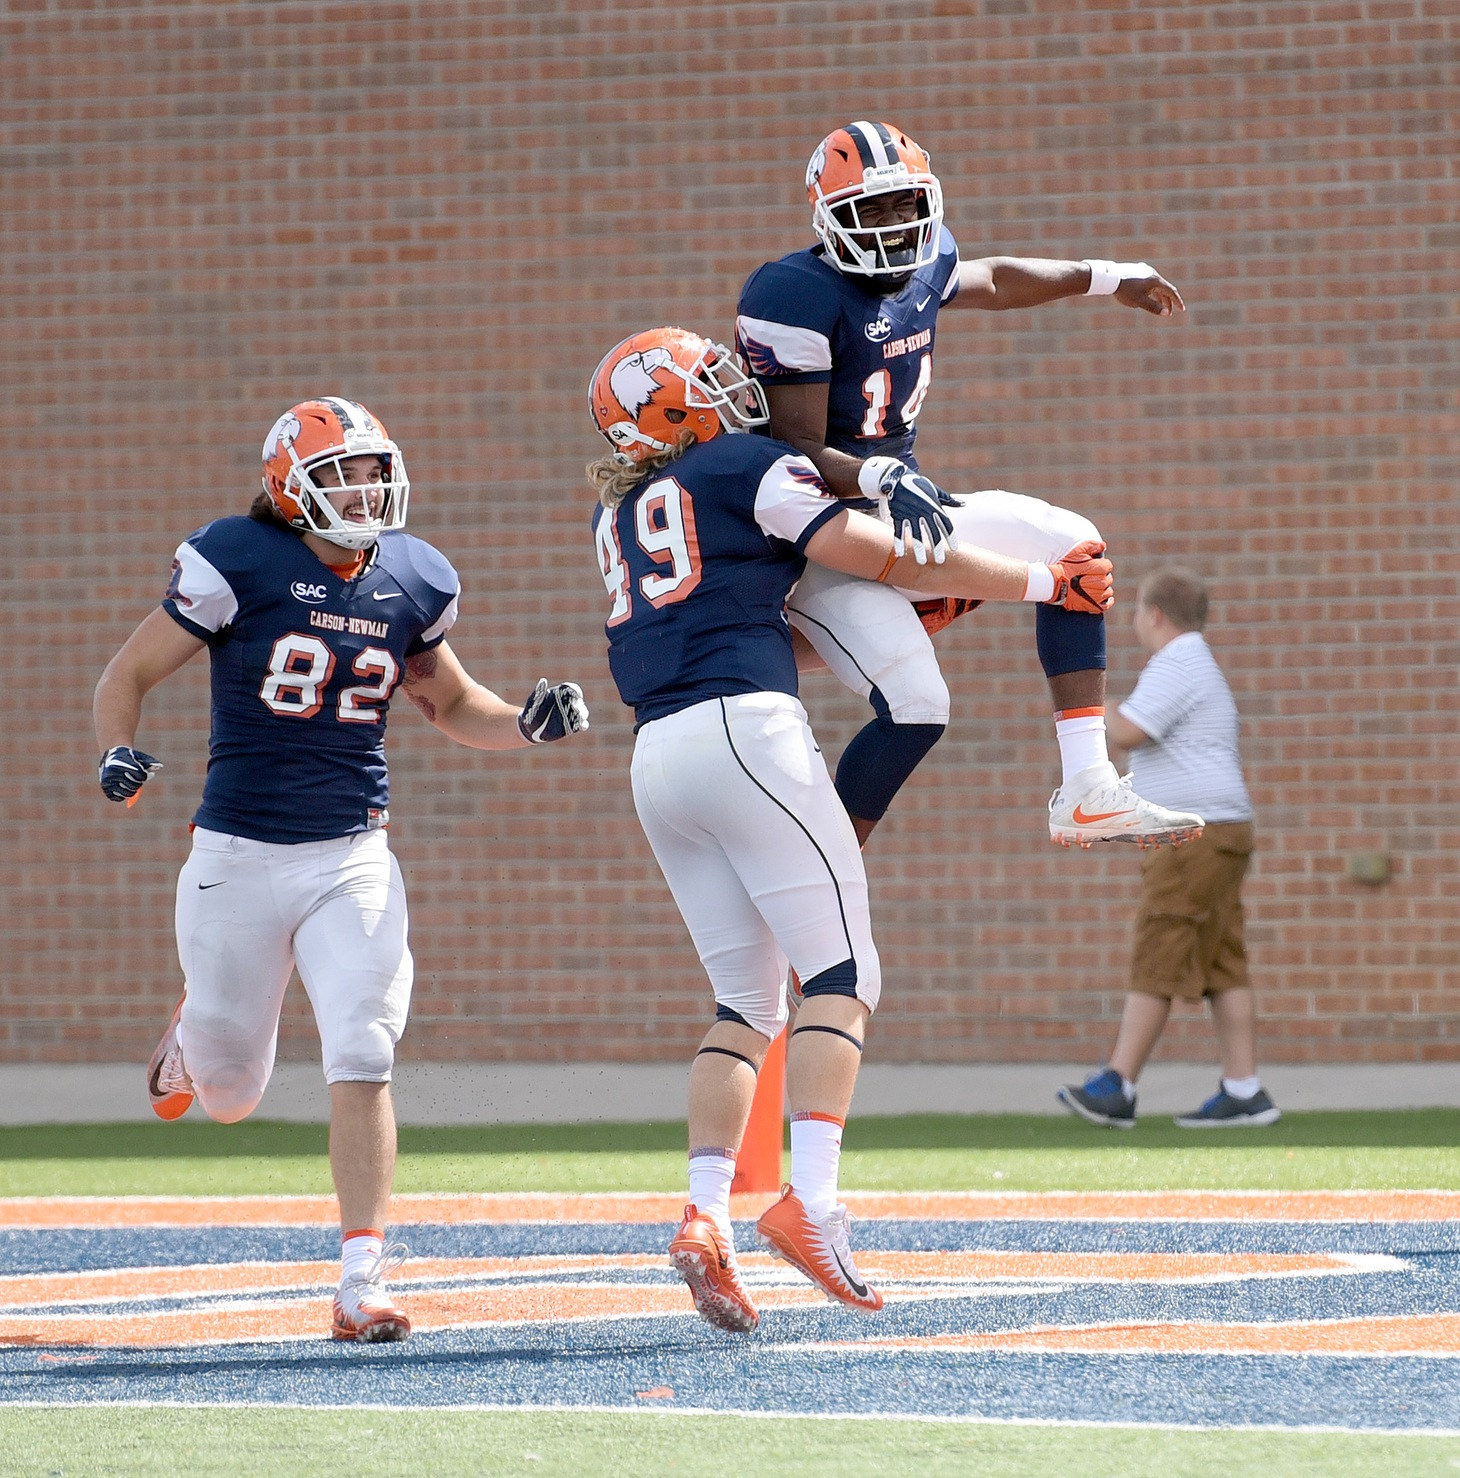 Eagles pound the ground in dominant 31-18 win over No. 23 Catawba